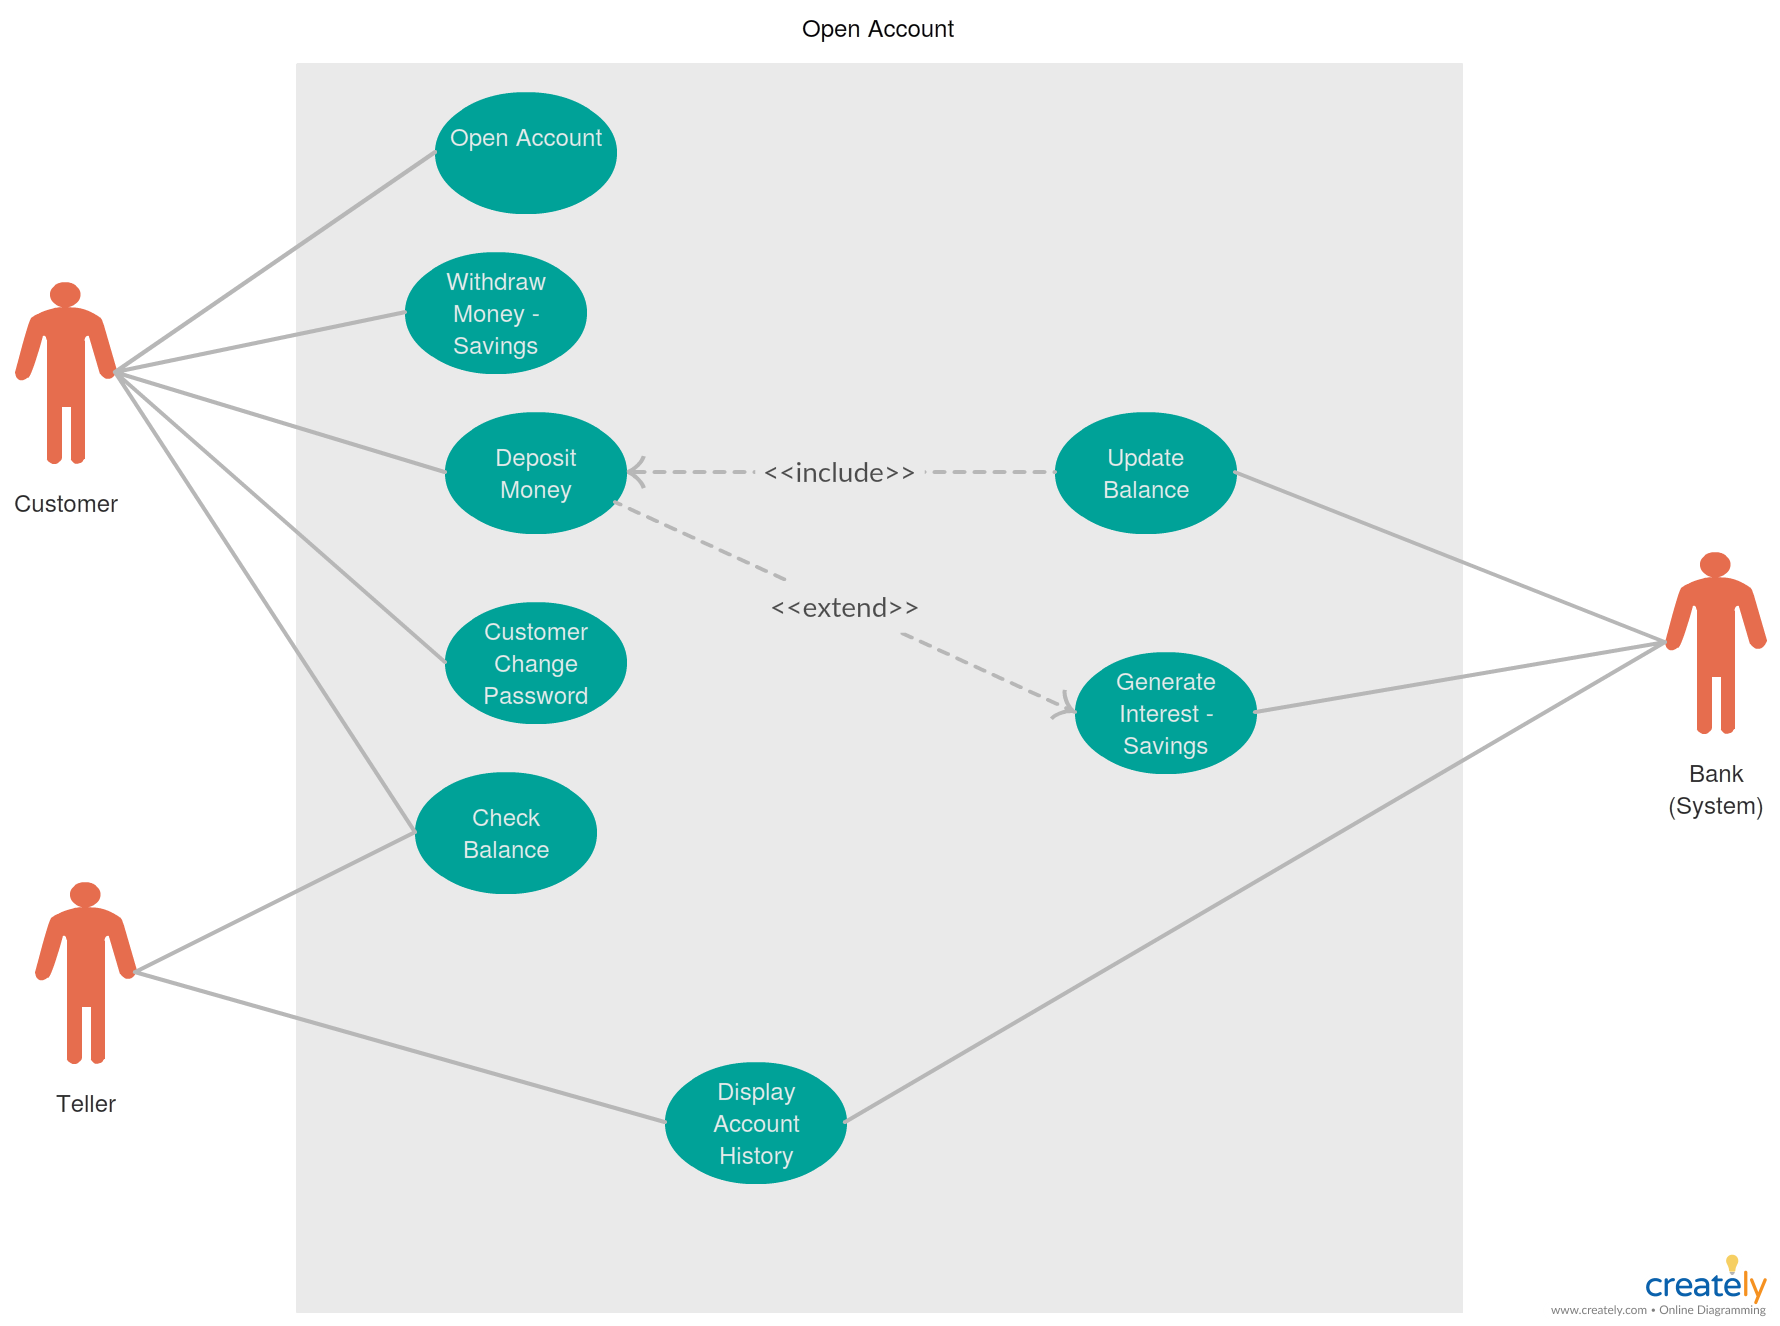 use case diagram for banking system use case diagram for an opening bank account can be easily drawn using creately use case diagram maker  [ 1780 x 1326 Pixel ]